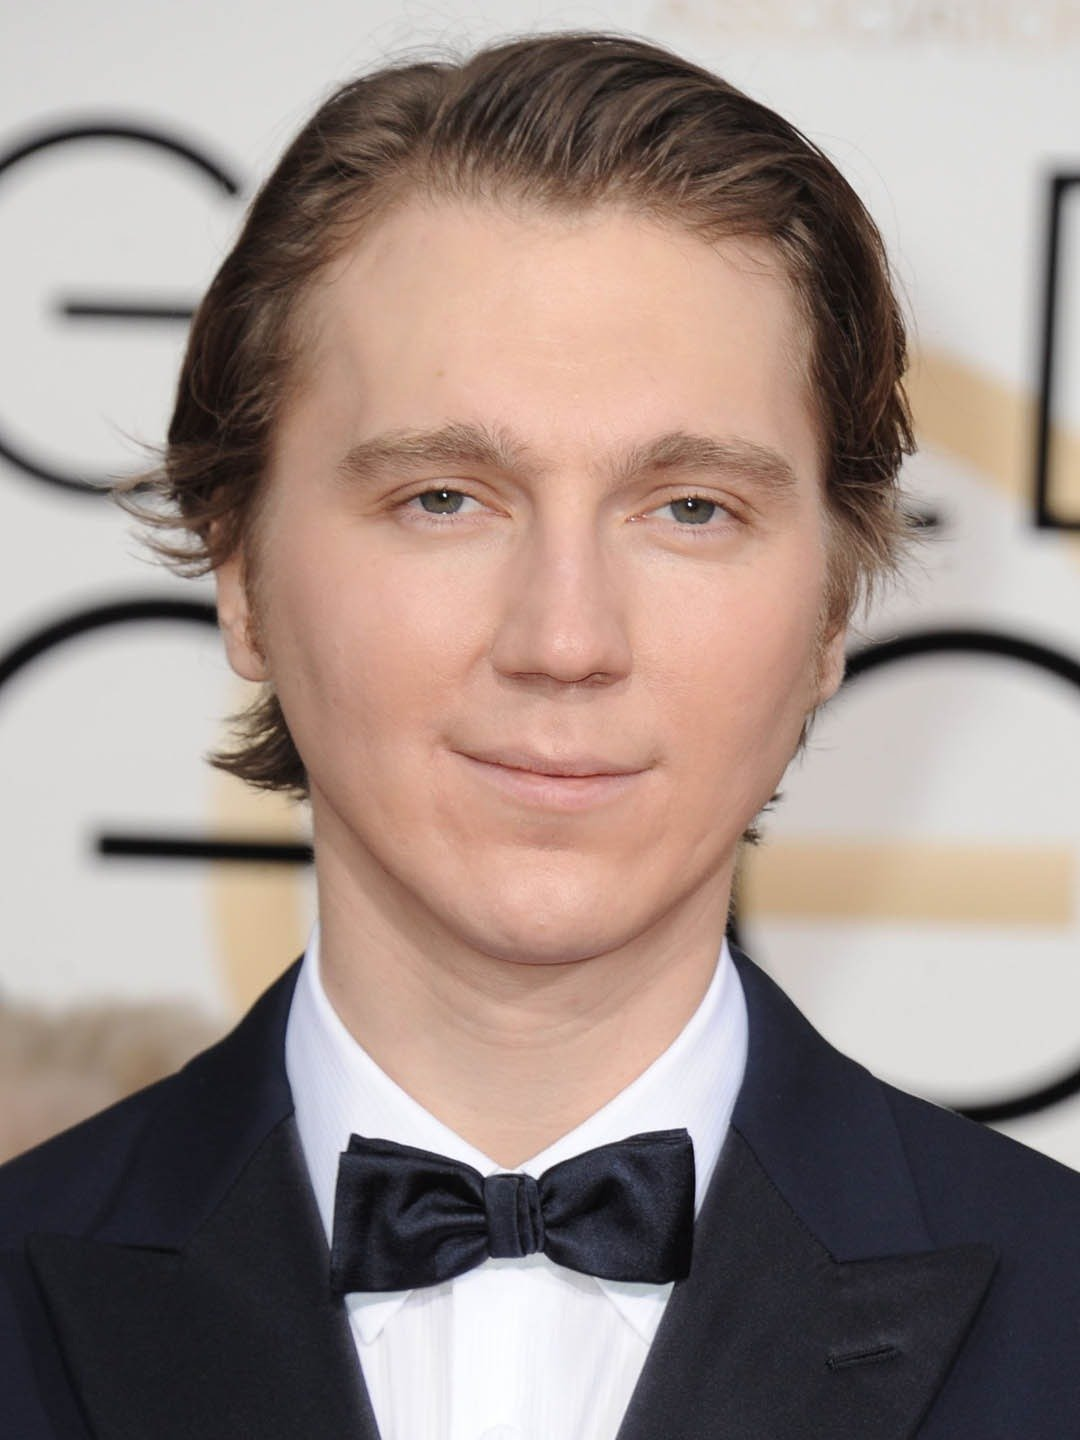 How tall is Paul Dano?